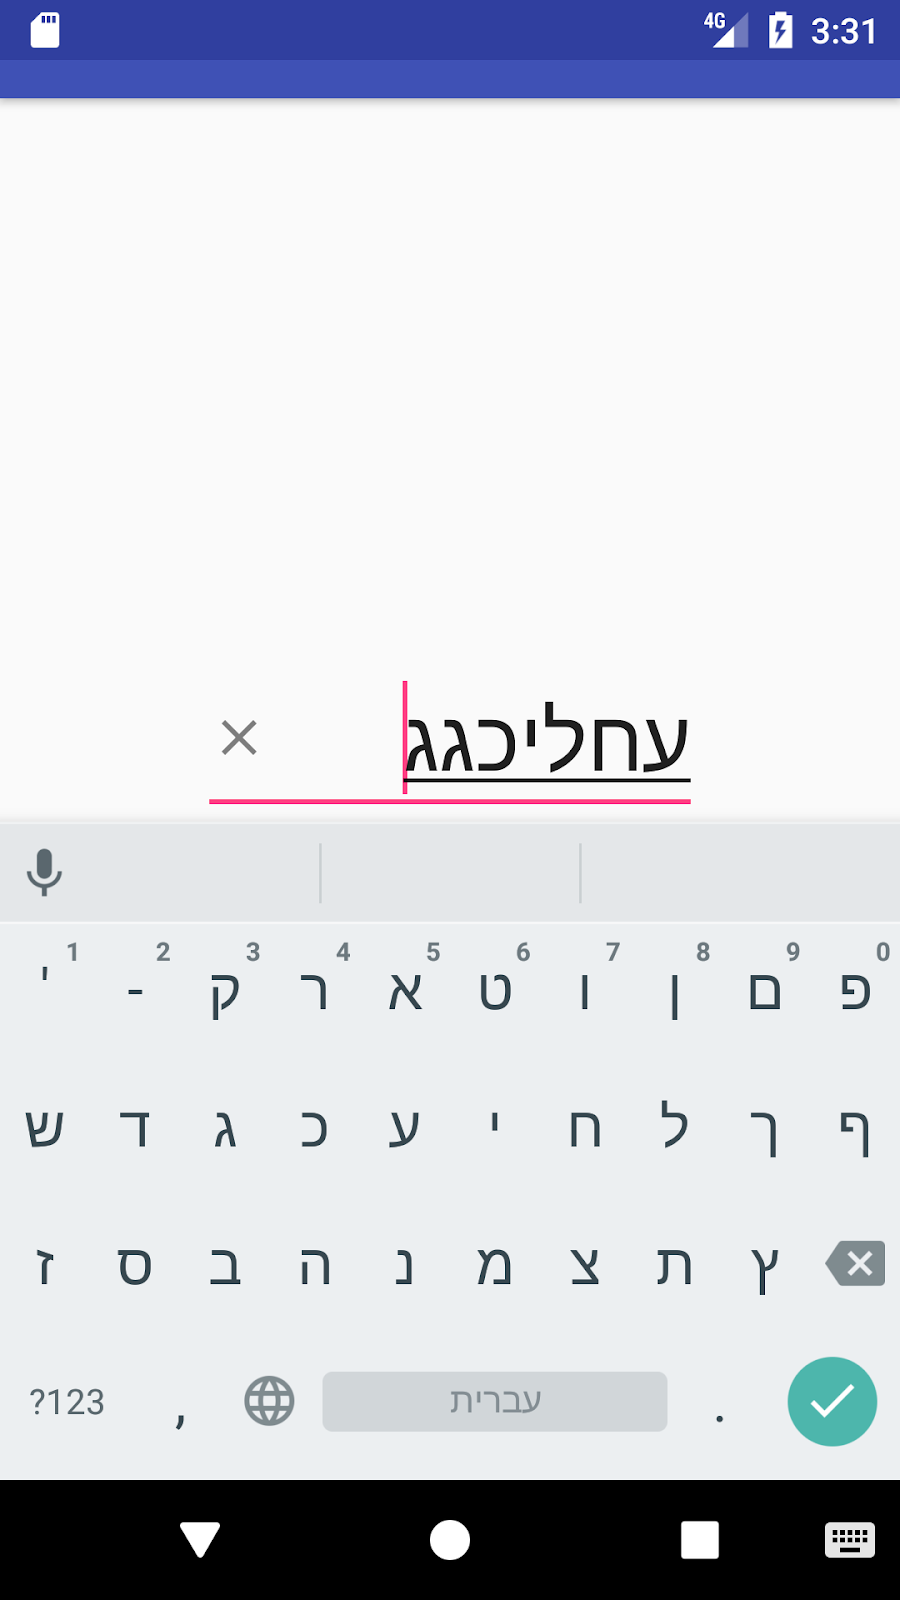 The CustomEditText app with an RTL language (Hebrew).